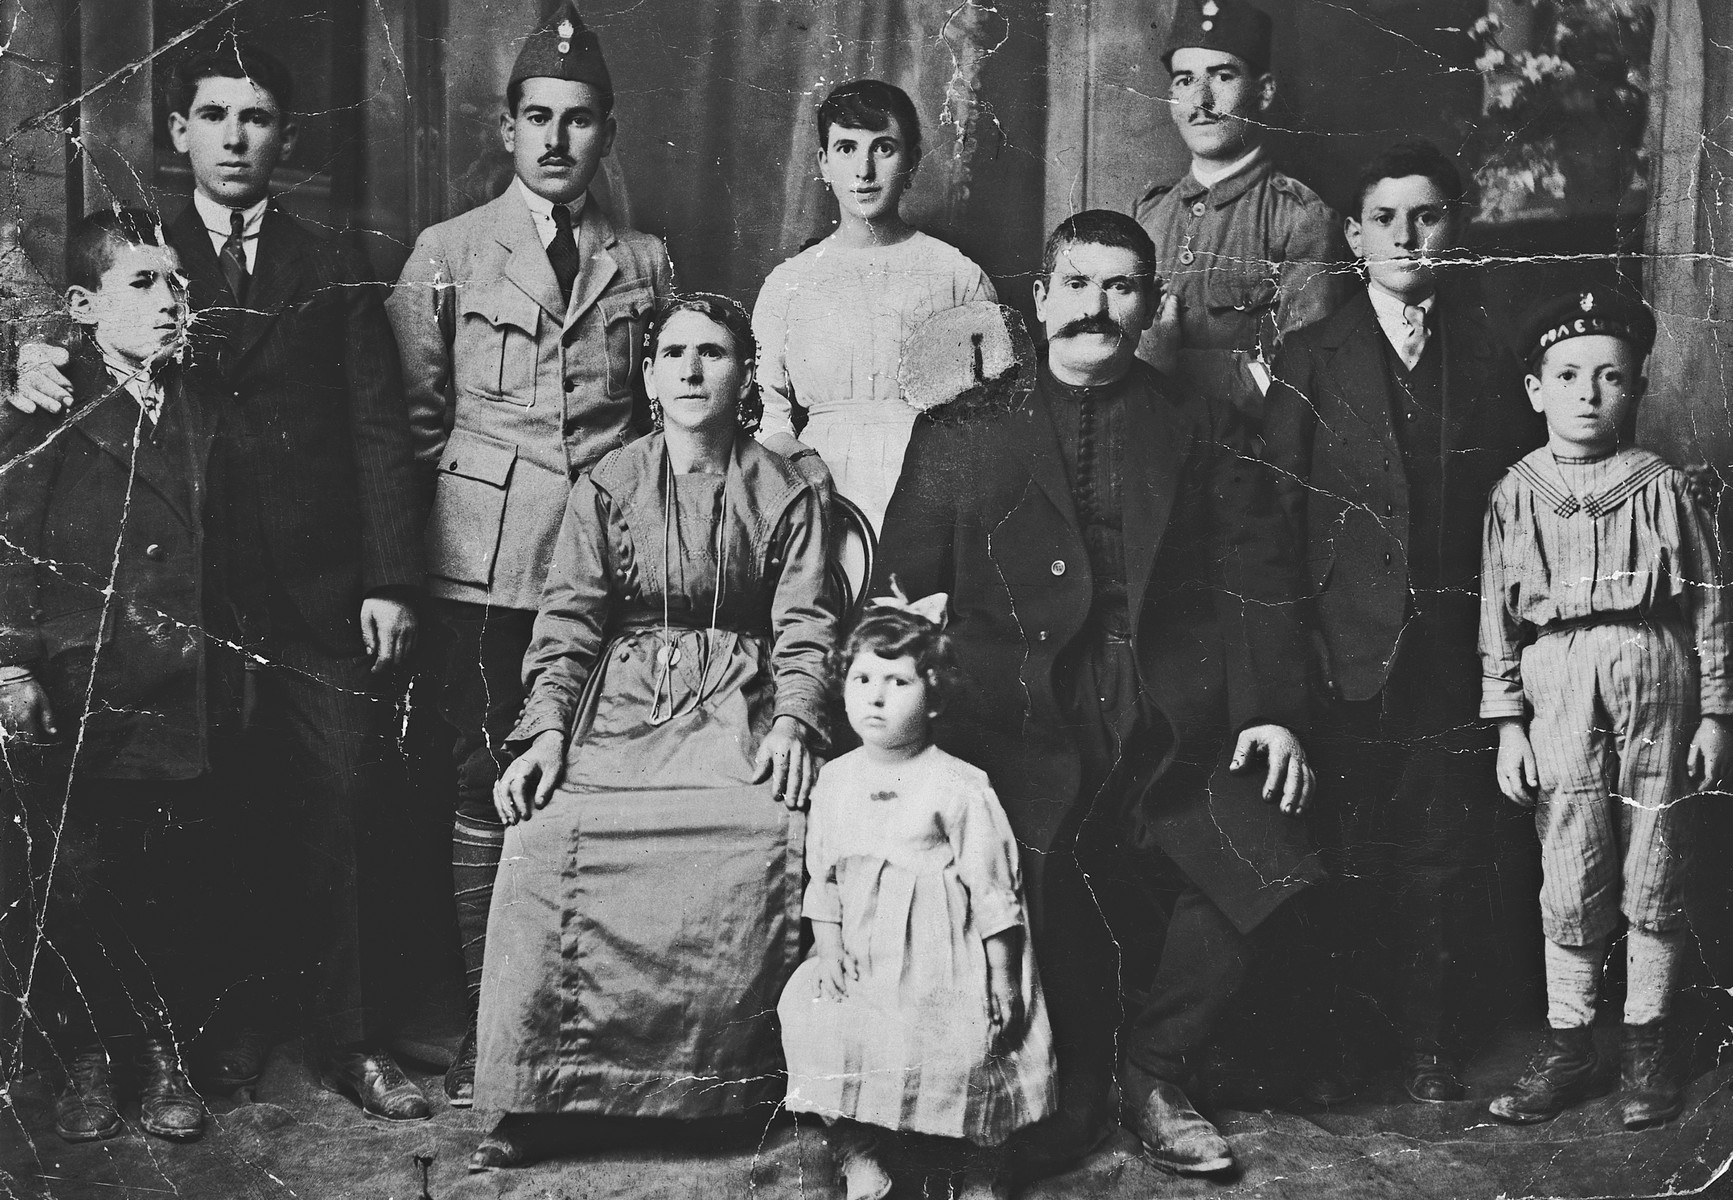 Studio portrait of a large family of Greek Jews from Ioannina discovered crumpled on the floor of their ransacked home after the war.  Pictured are members of the Matsas family.  Seated are Sarina and Nahoum Matsas and Rebecca (b. 1916).  Standing from left to right Eliasaf (b. 1910), Leon (b. 1902), Raphael (b. 1899), Rosina (b. 1904), Jeshua (b. 1896), Elias (b. 1907) and Michael (b.1912).